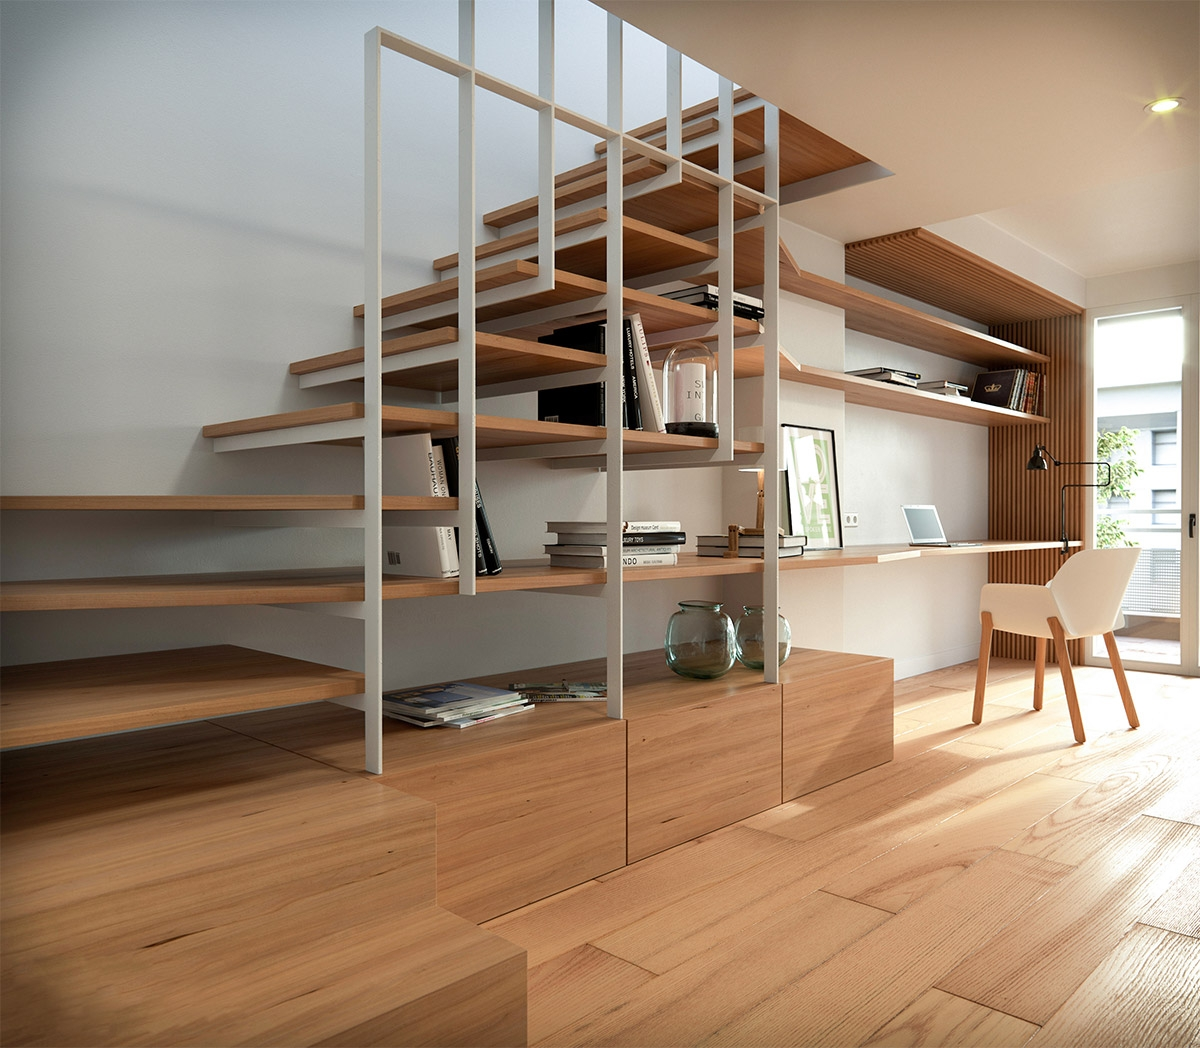 51 Stunning Staircase Design Ideas | Style Of Stairs Inside House | Outside India House | Spiral | Design | Mansion | Historic House